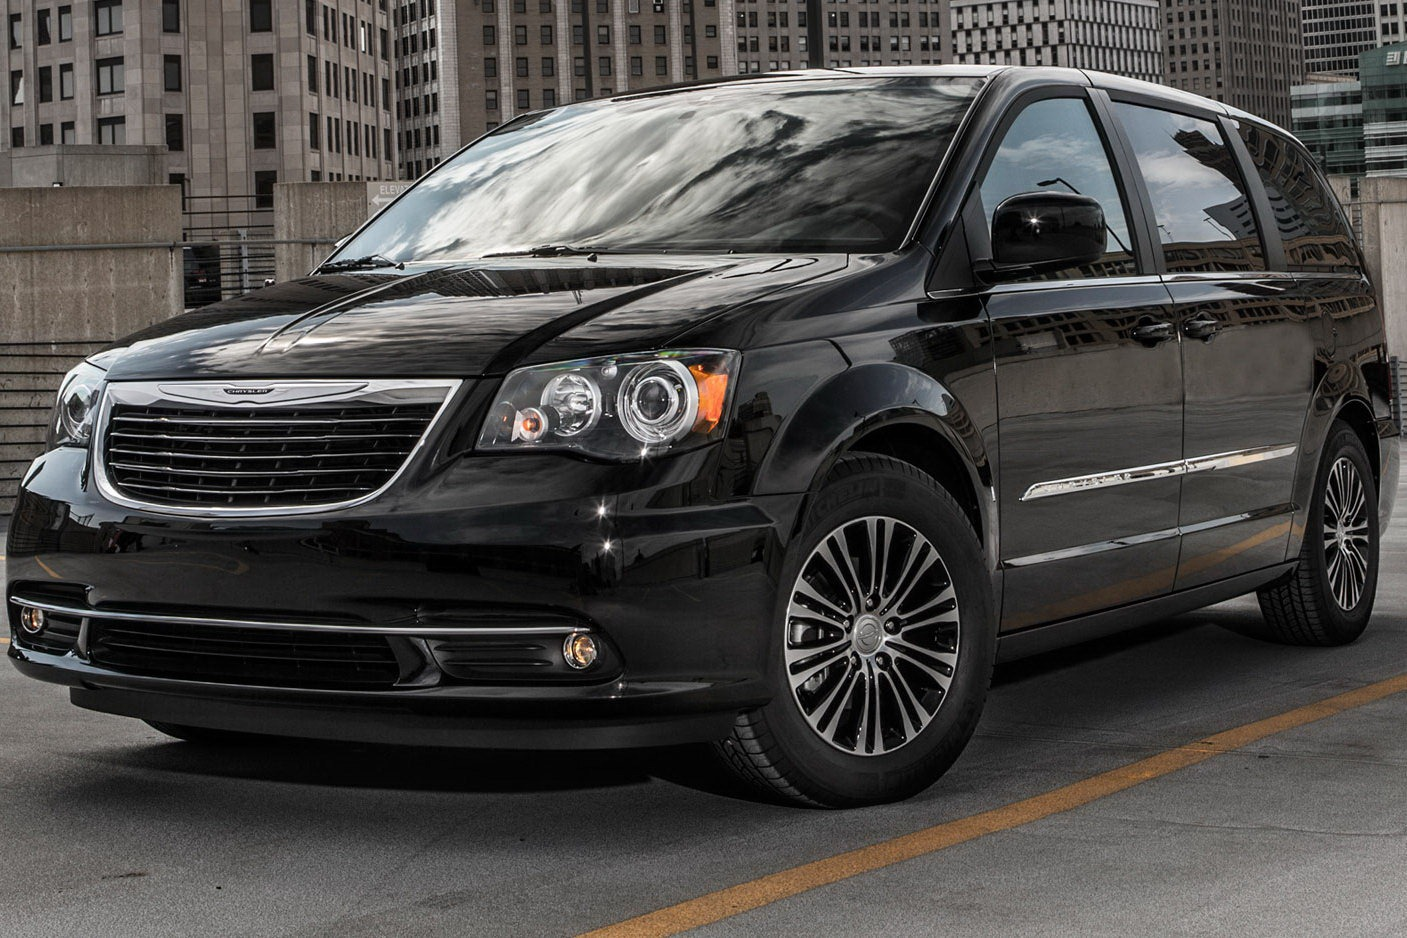 new 2013 chrysler town and country s edition heading to the la auto show auto cars concept. Black Bedroom Furniture Sets. Home Design Ideas